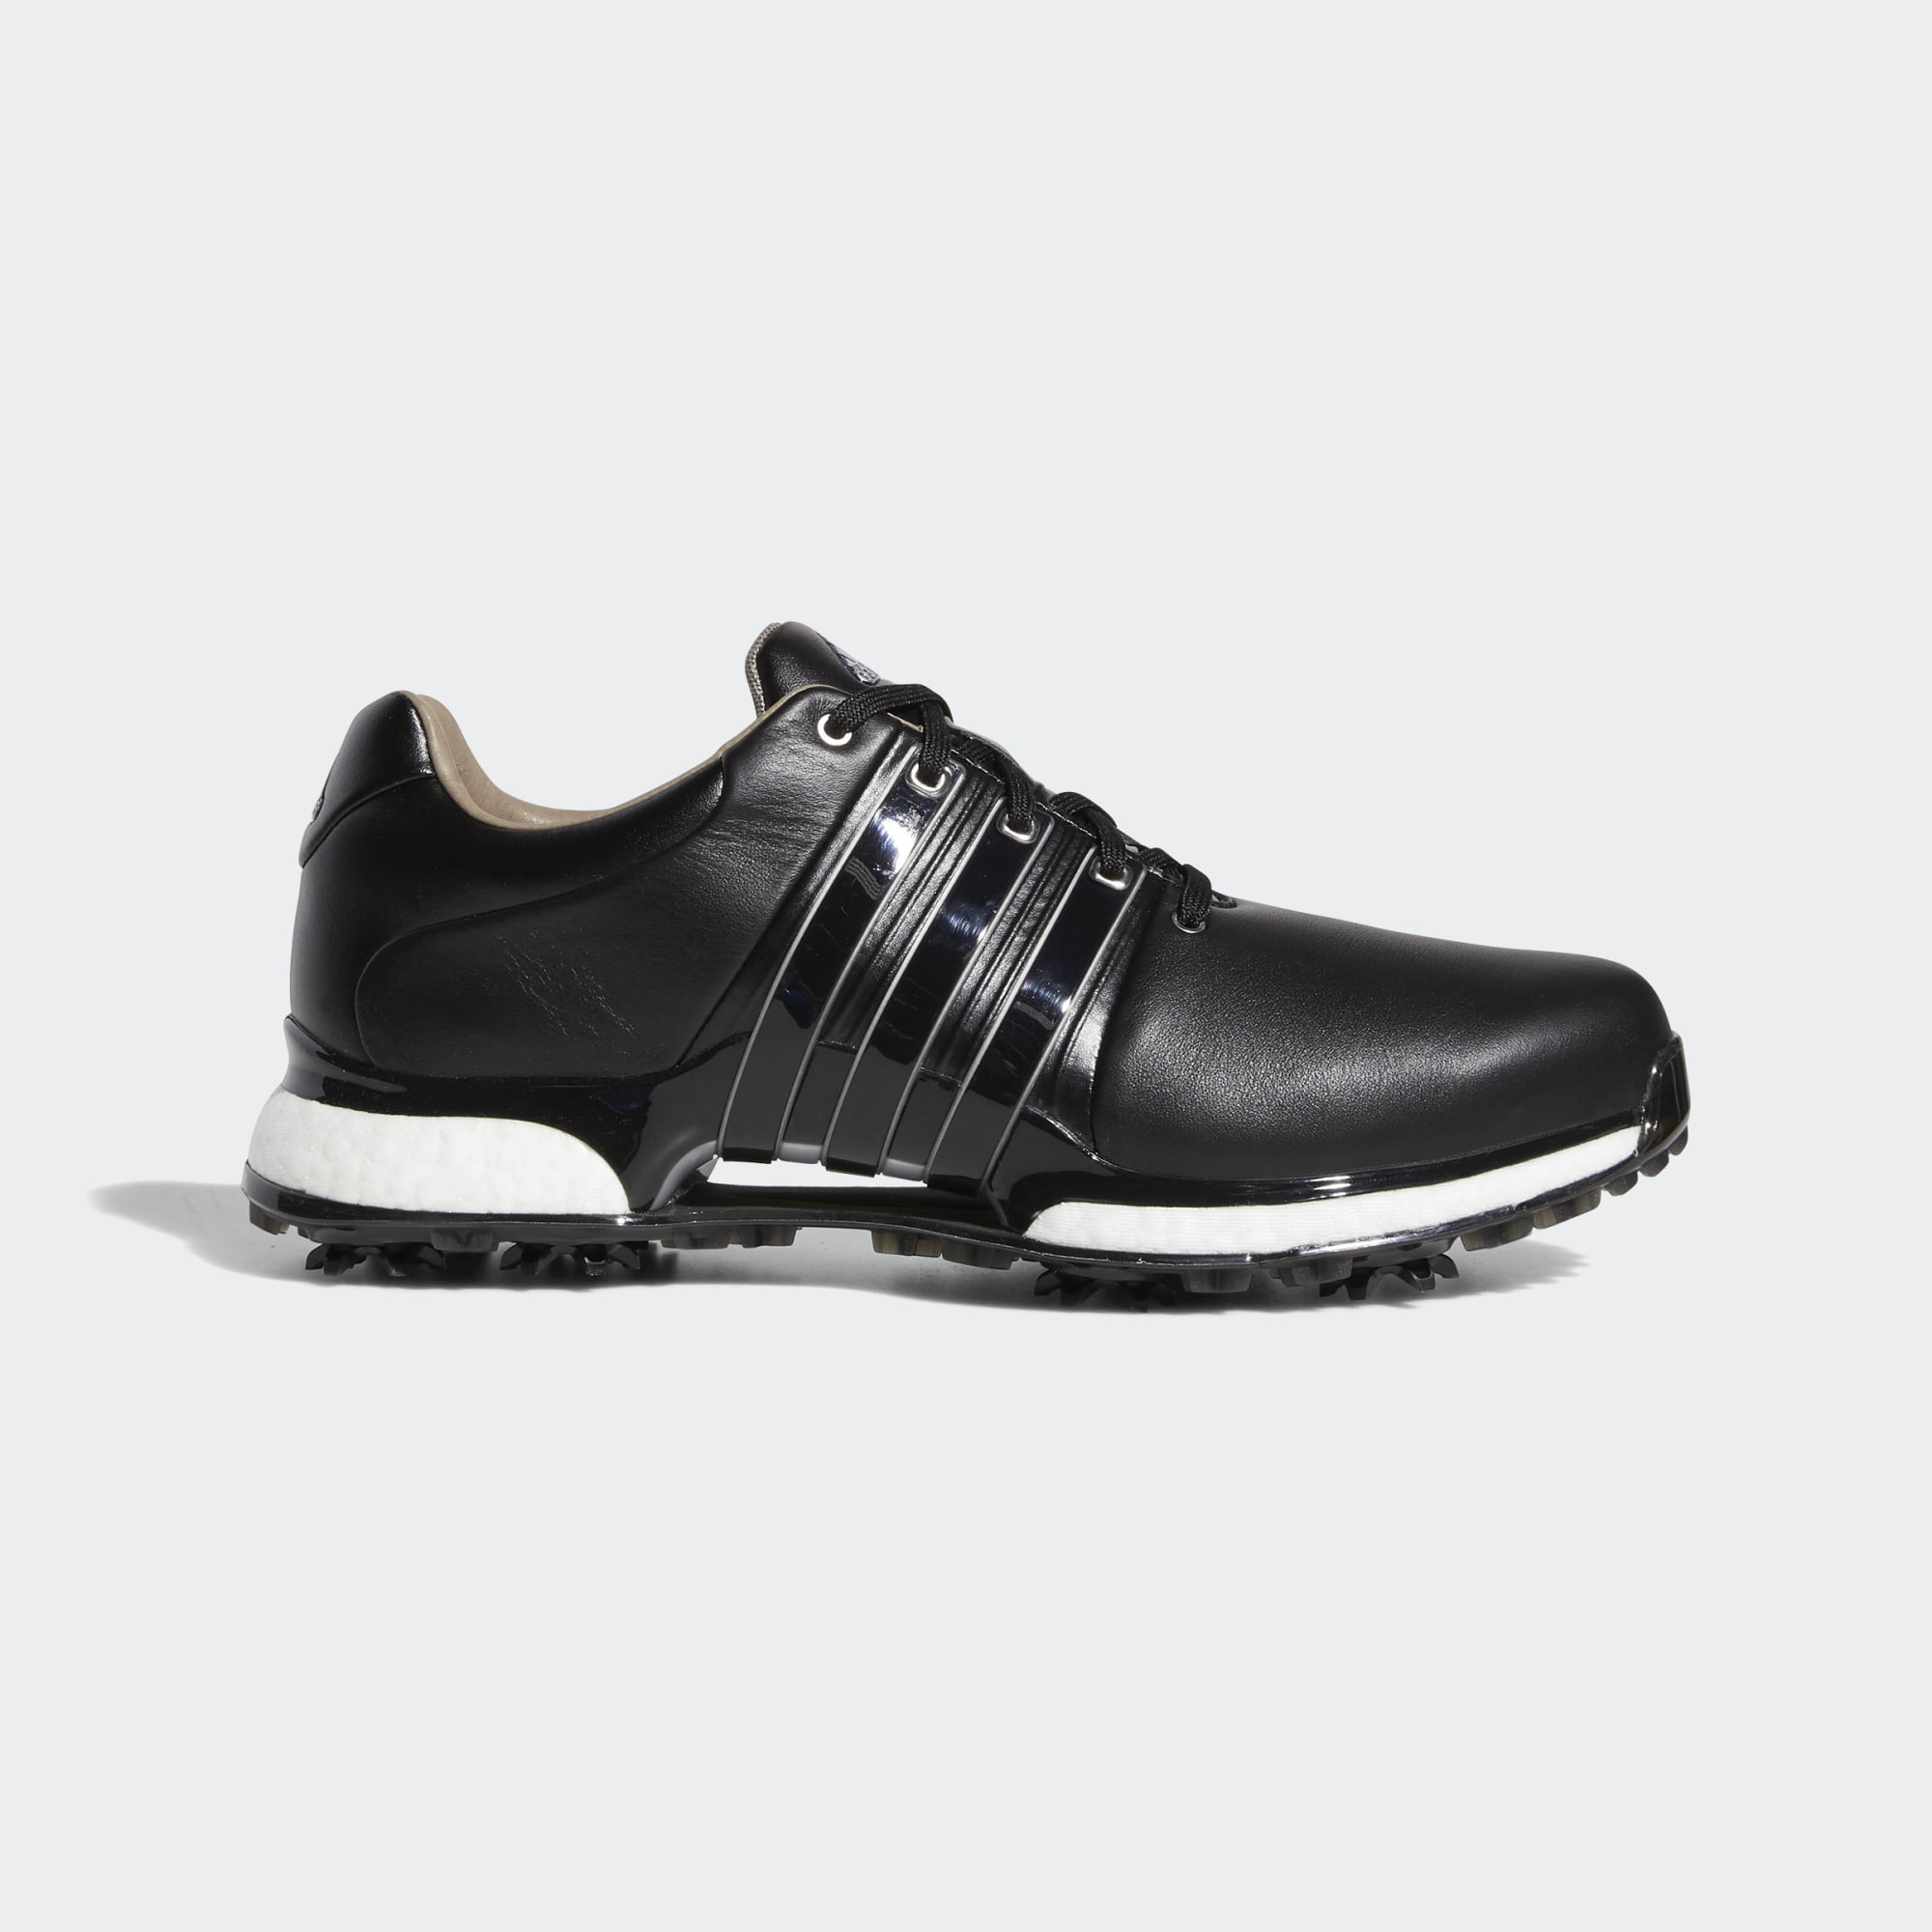 Adidas Men's Tour360XT Black Golf Shoe